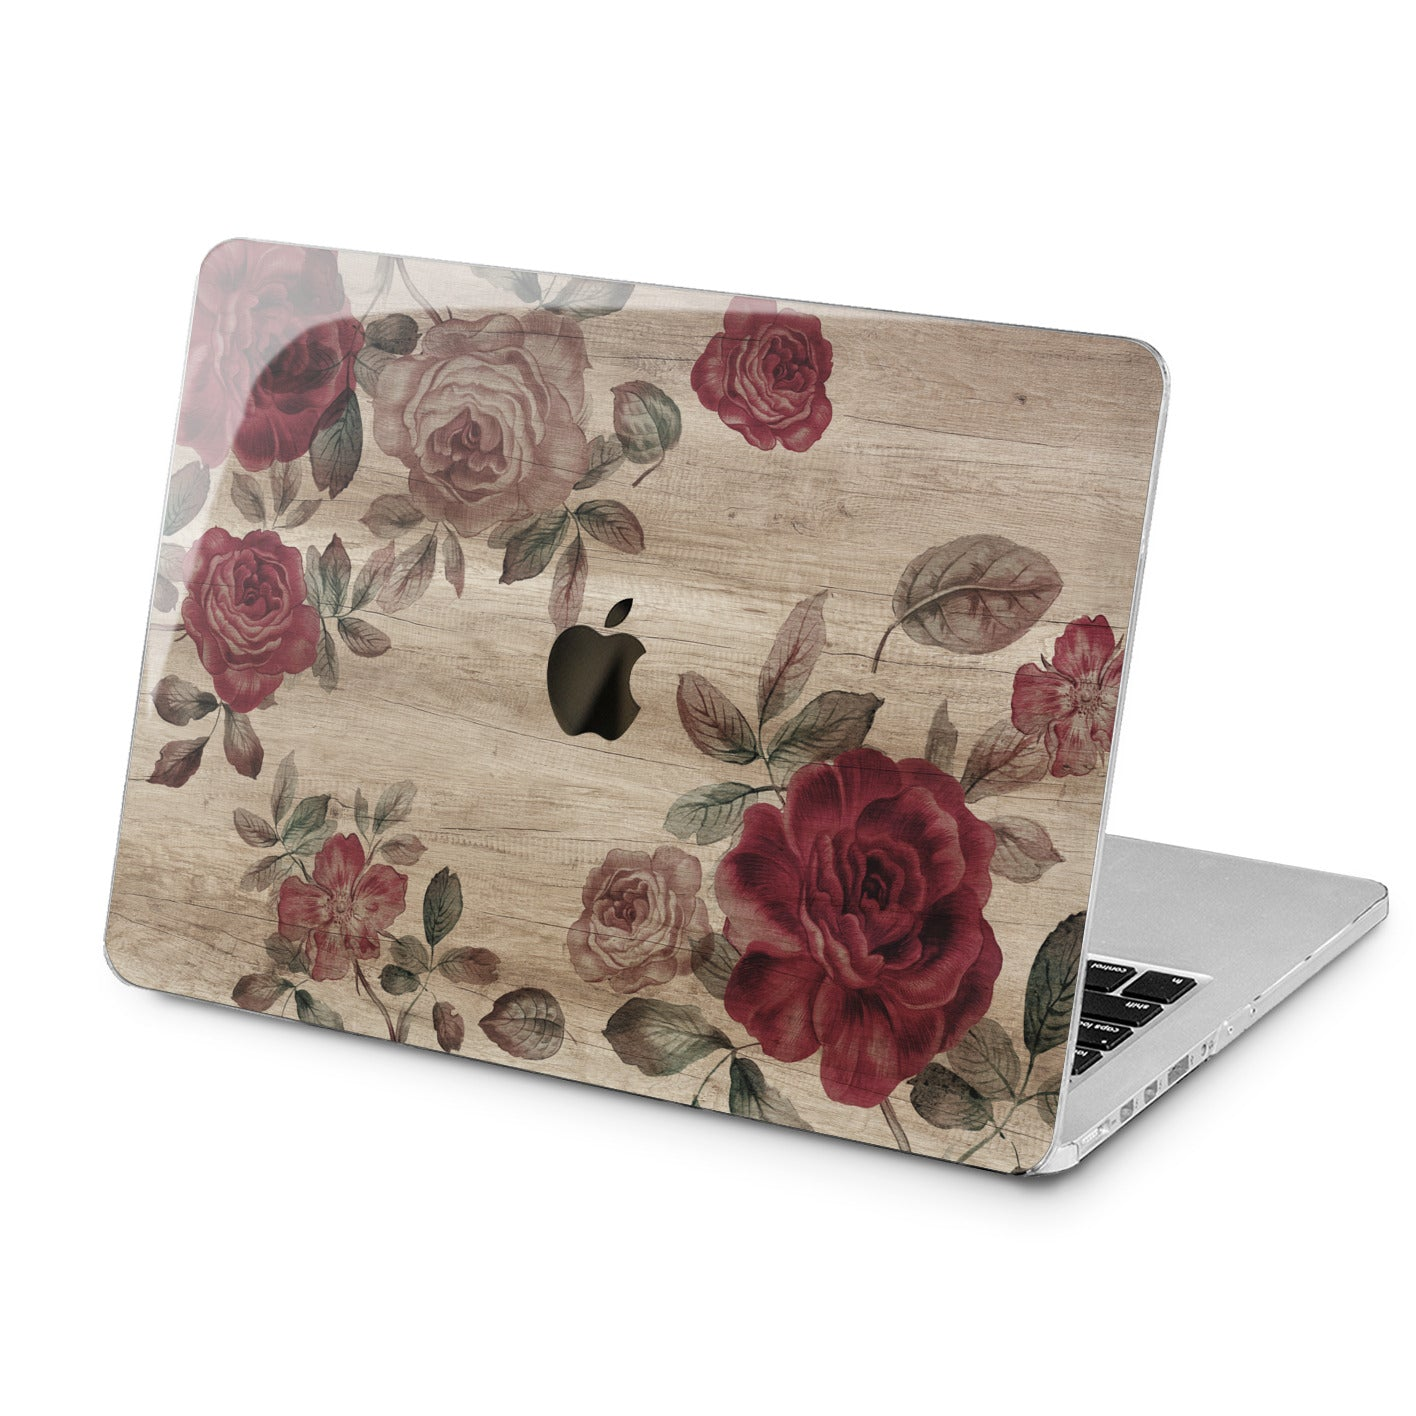 Lex Altern Red Roses Design Art Case for your Laptop Apple Macbook.